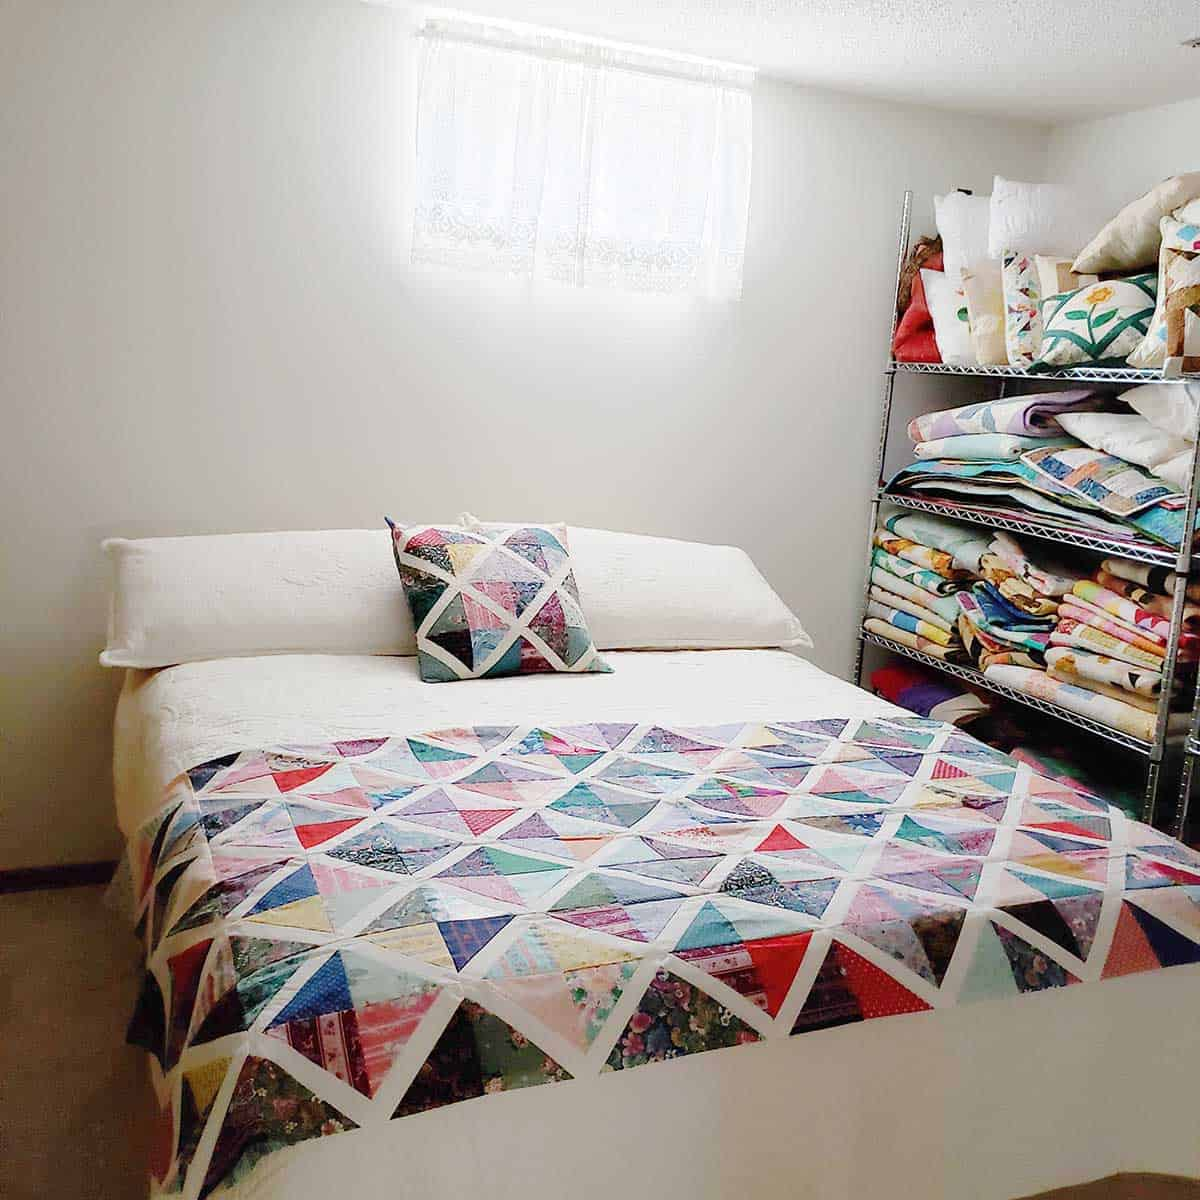 Guest bedroom with quilt and pillow